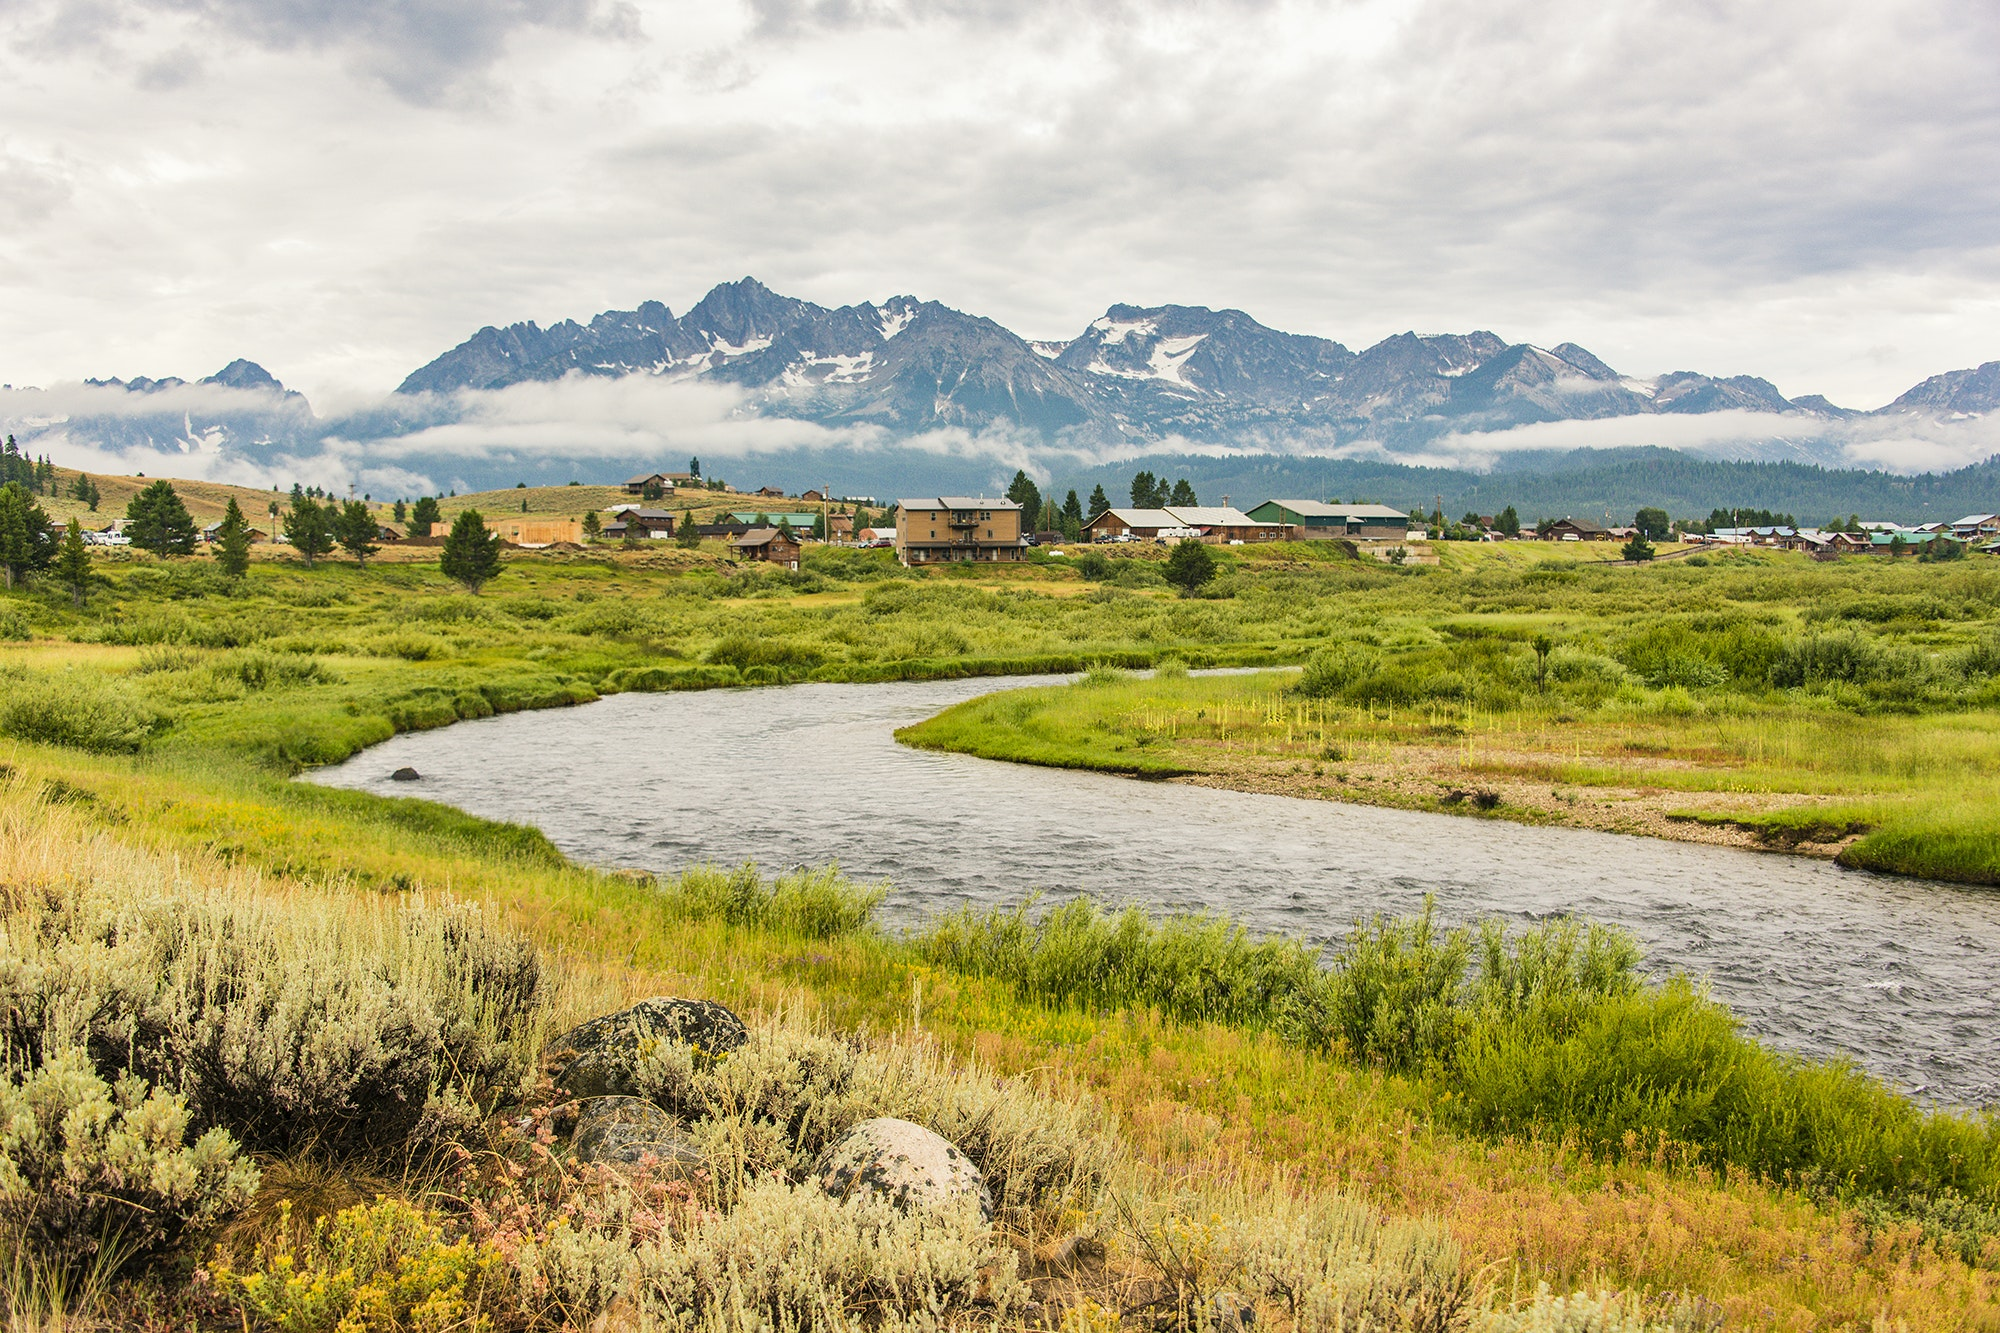 When you arrive in Stanley, views of the Sawtooth Range and Frank Church—River of No Return Wilderness will beckon you to get deeper into nature.